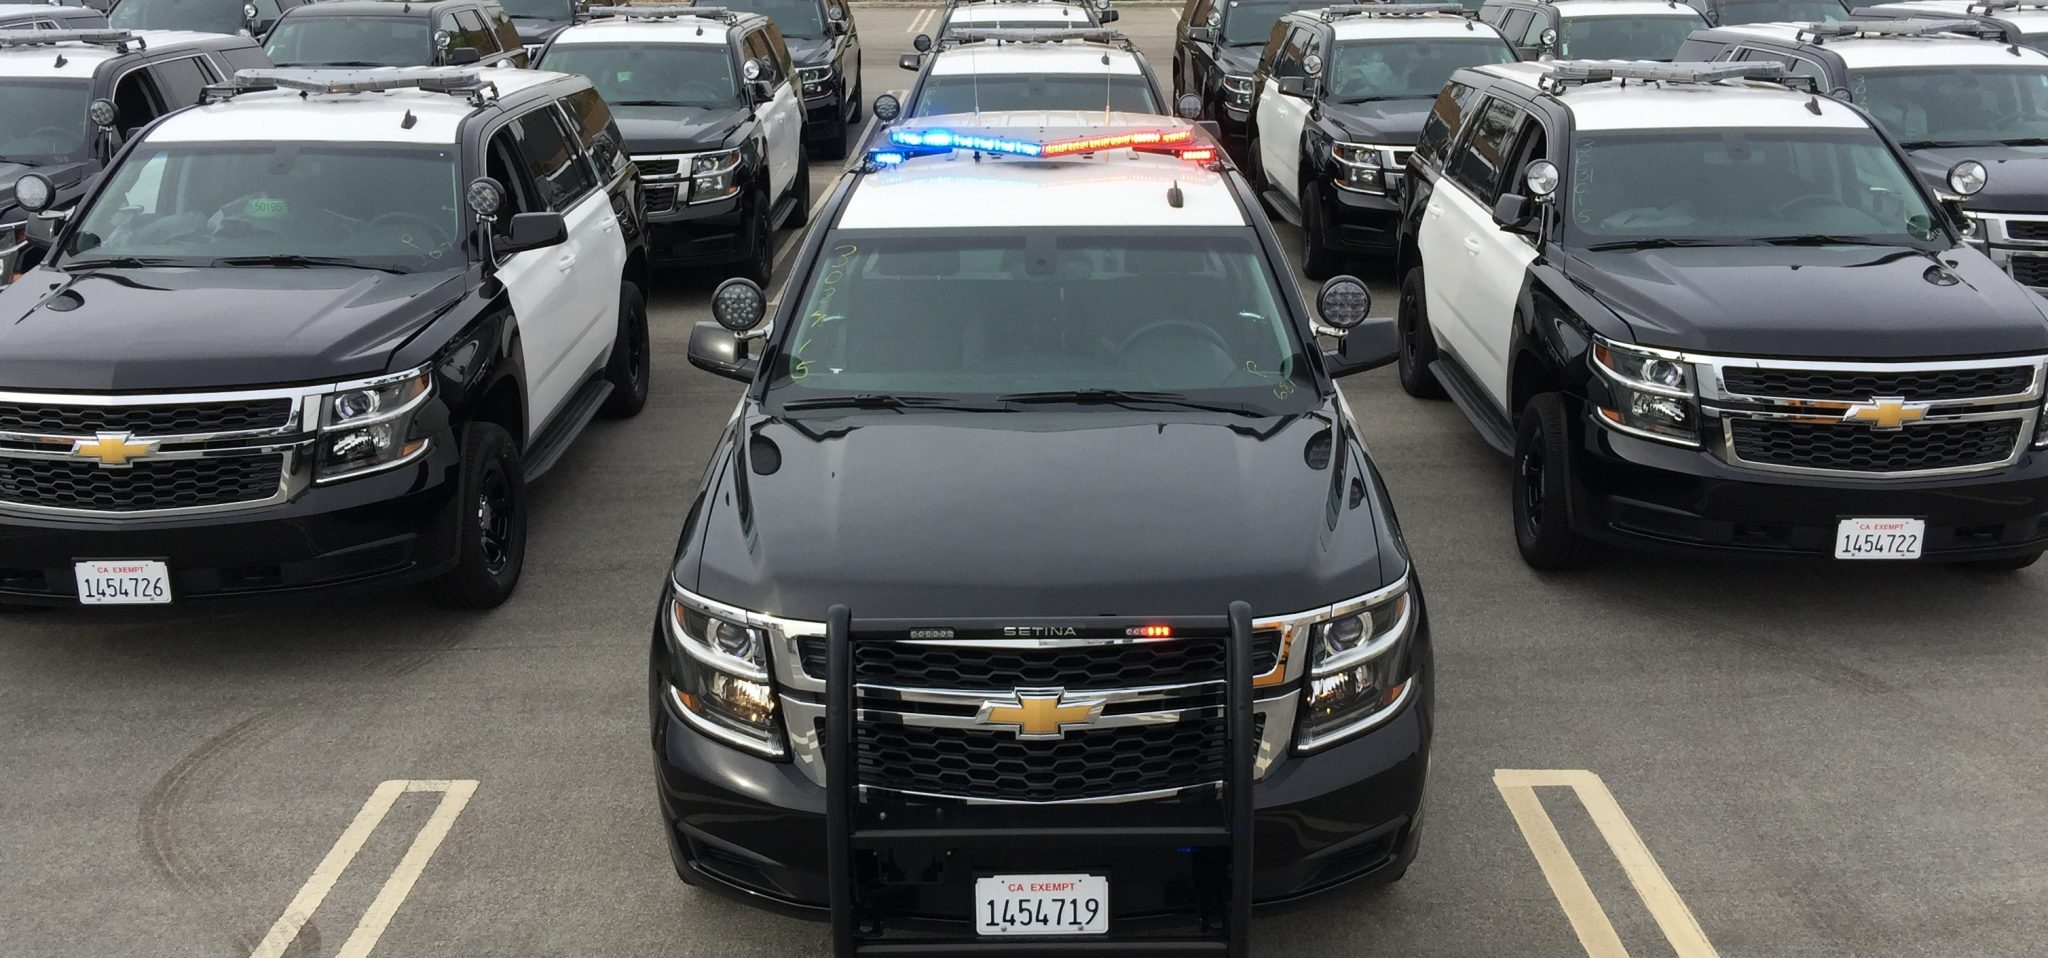 First Chevy Tahoe PPVs Go to County of Ventura - The News ...